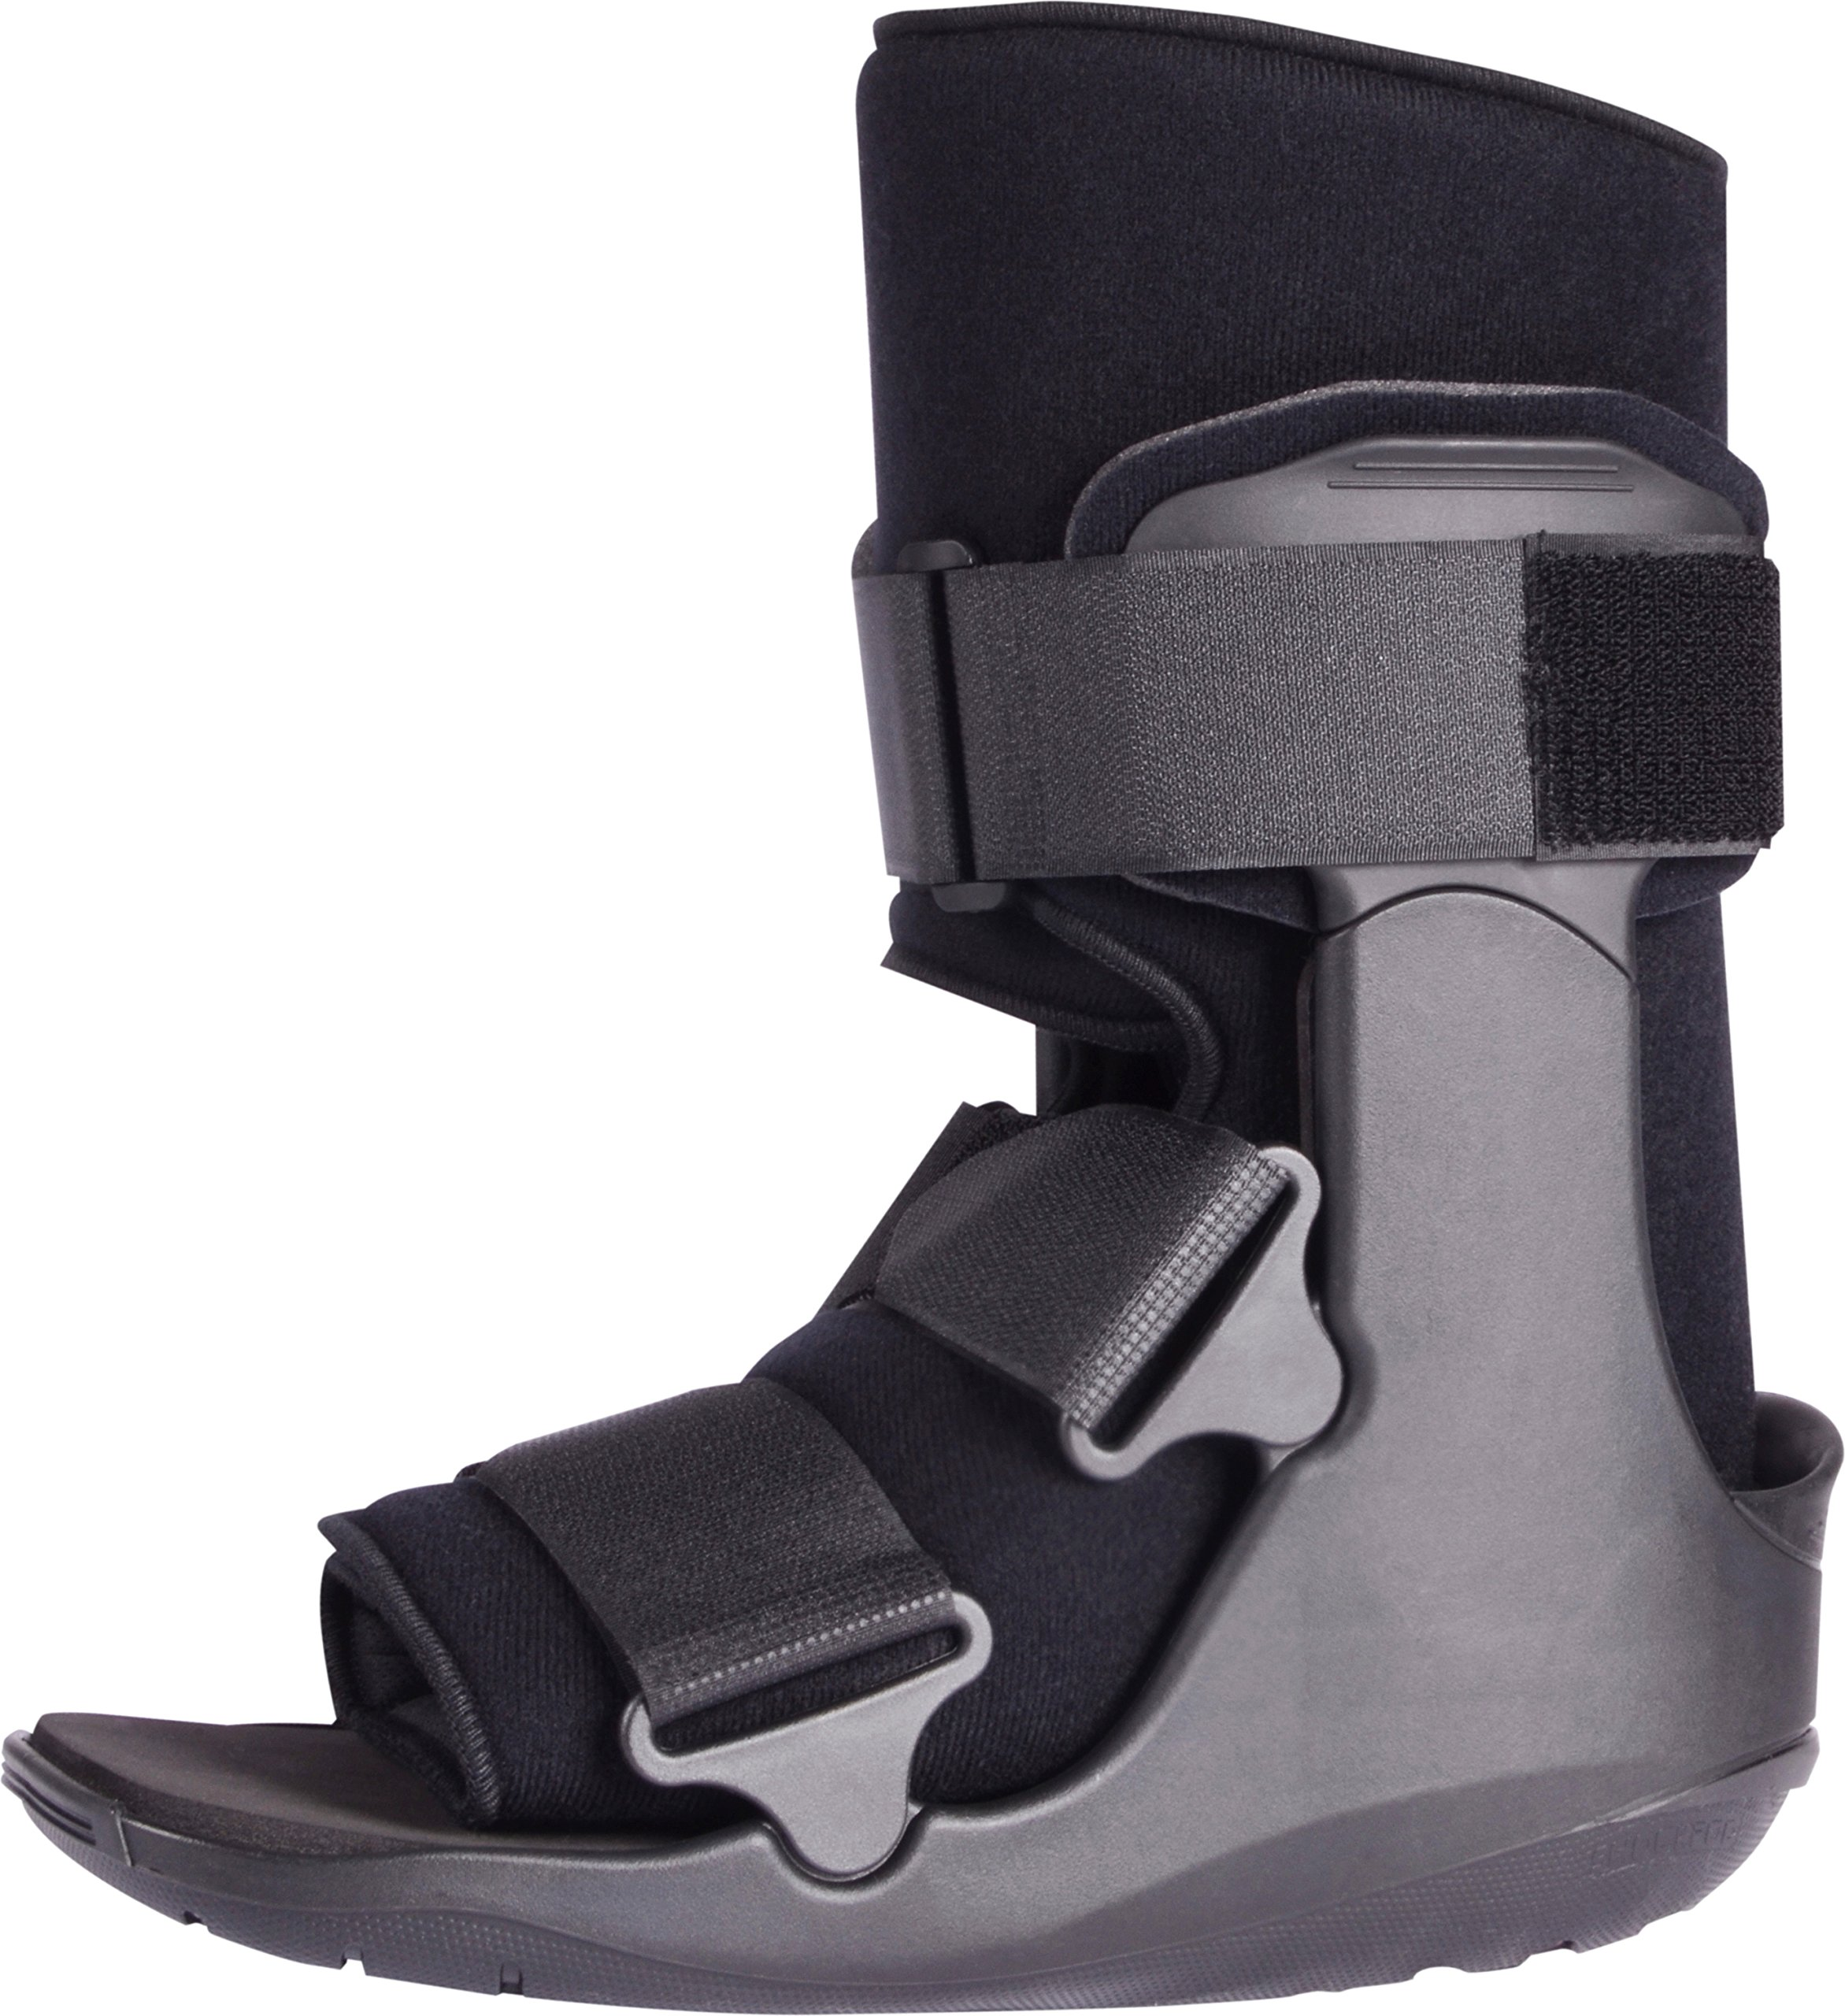 ProCare XcelTrax Ankle Walker Brace / Walking Boot, X-Small by ProCare